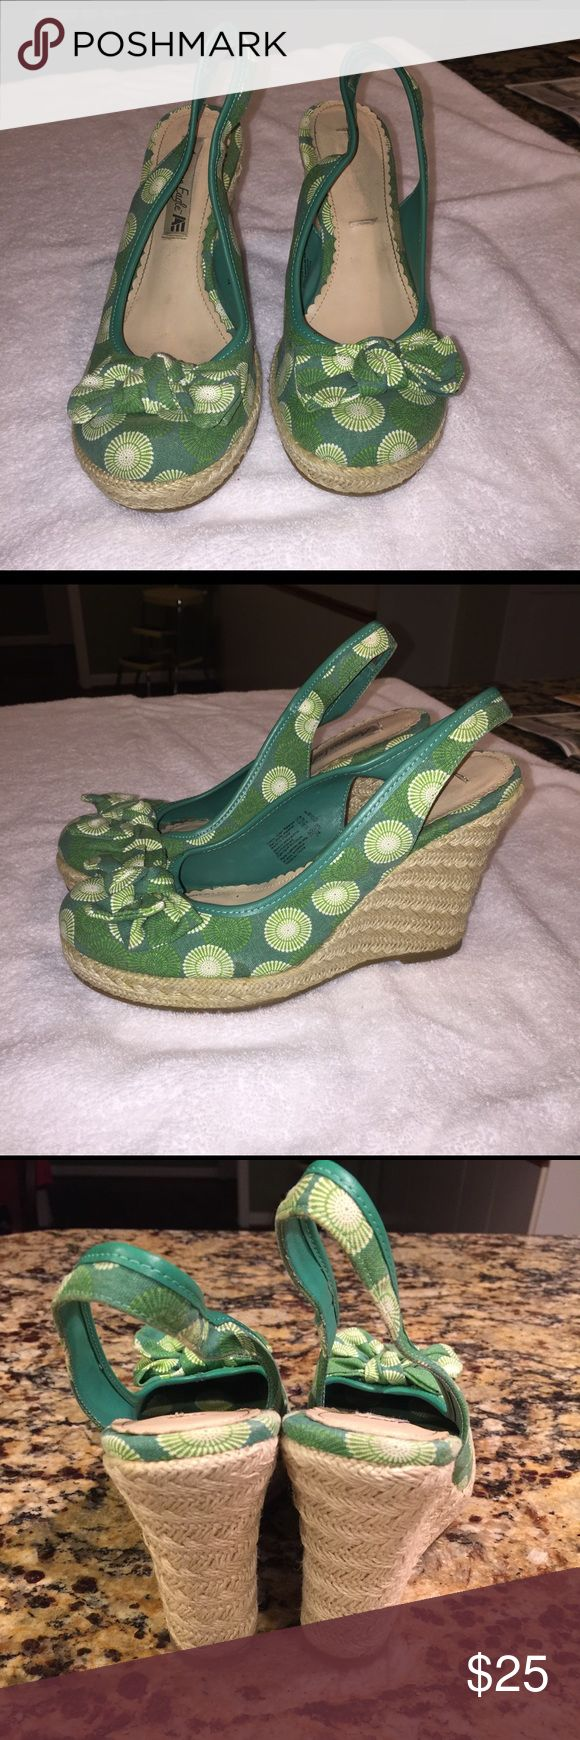 """American Eagle Espadrille Wedge Size 8 American Eagle ladies espadrille canvas sandal with 4"""" wedge, Size 8, rubber sole, and elastic inside the back strap for comfort and hold. Barely worn and sooooo cute for spring!  There is a spot on the side of one of the wedges that looks like a drop of glue possibly. Can hardly see it but I wanted to point it out. American Eagle Outfitters Shoes Espadrilles"""